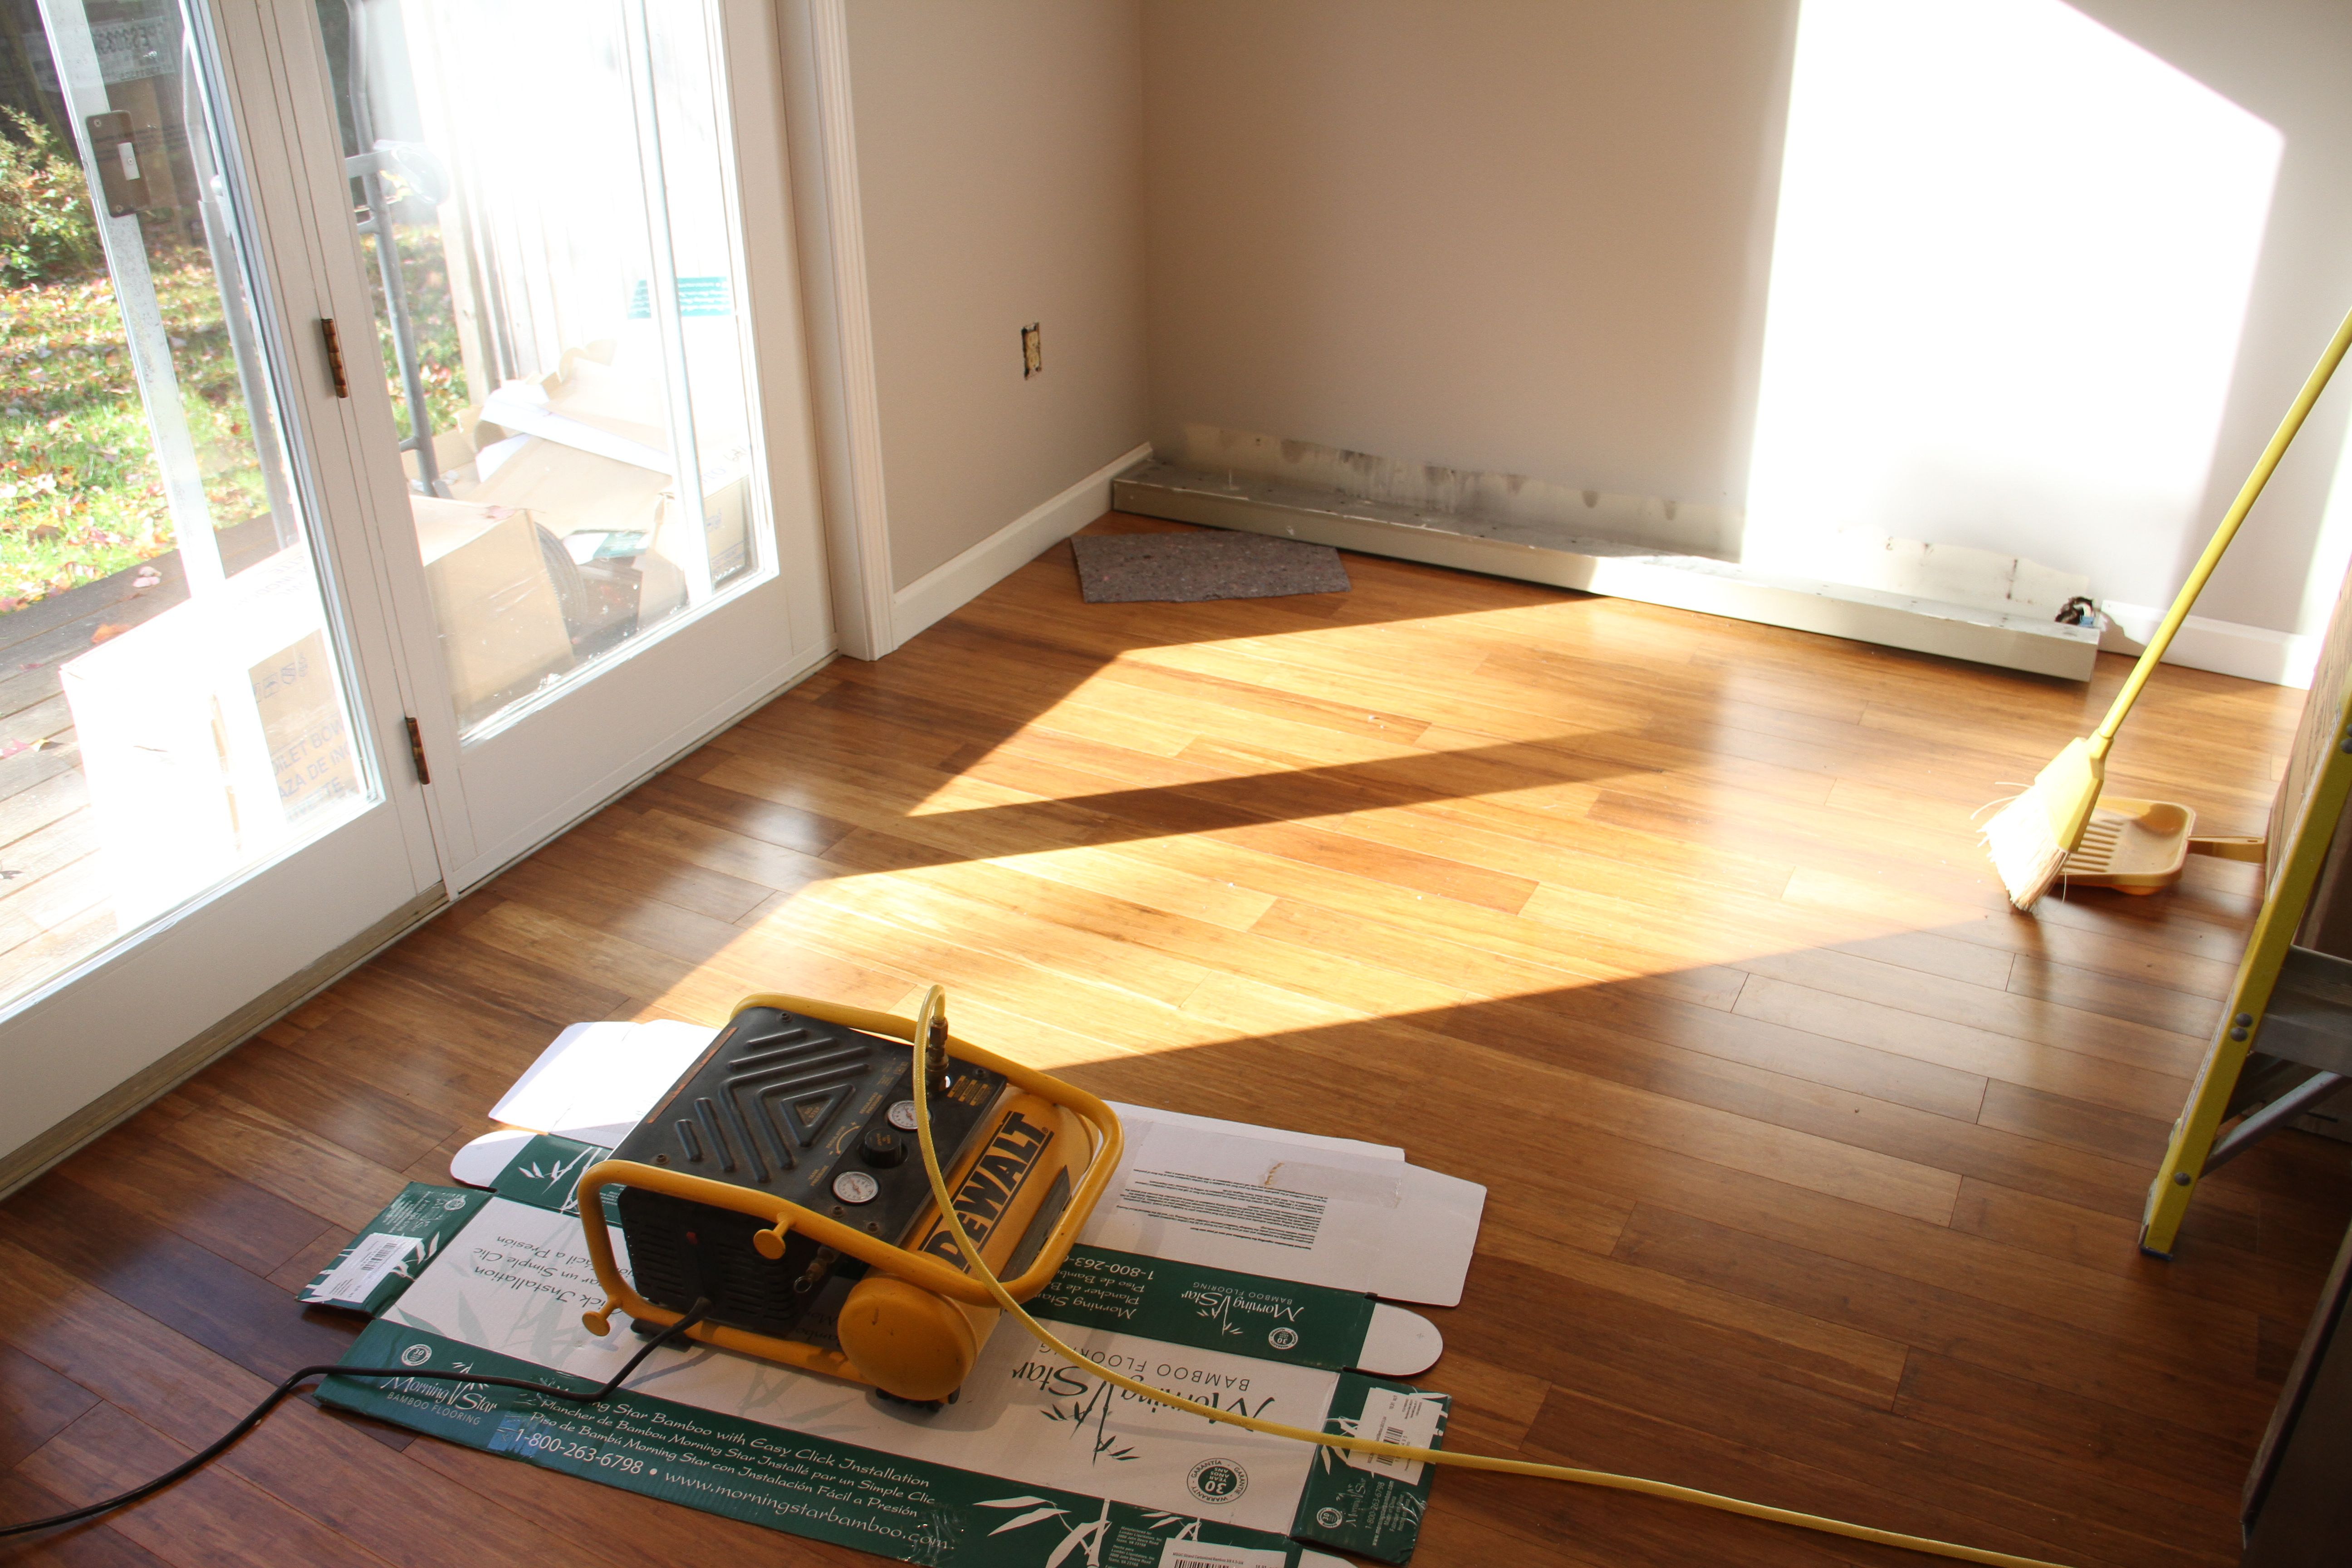 Meanwhile, Jonas had been installing baseboard all over the house. And then the sun came out. It gave me my first glimpse into the gloriousness that is now my mom's house.